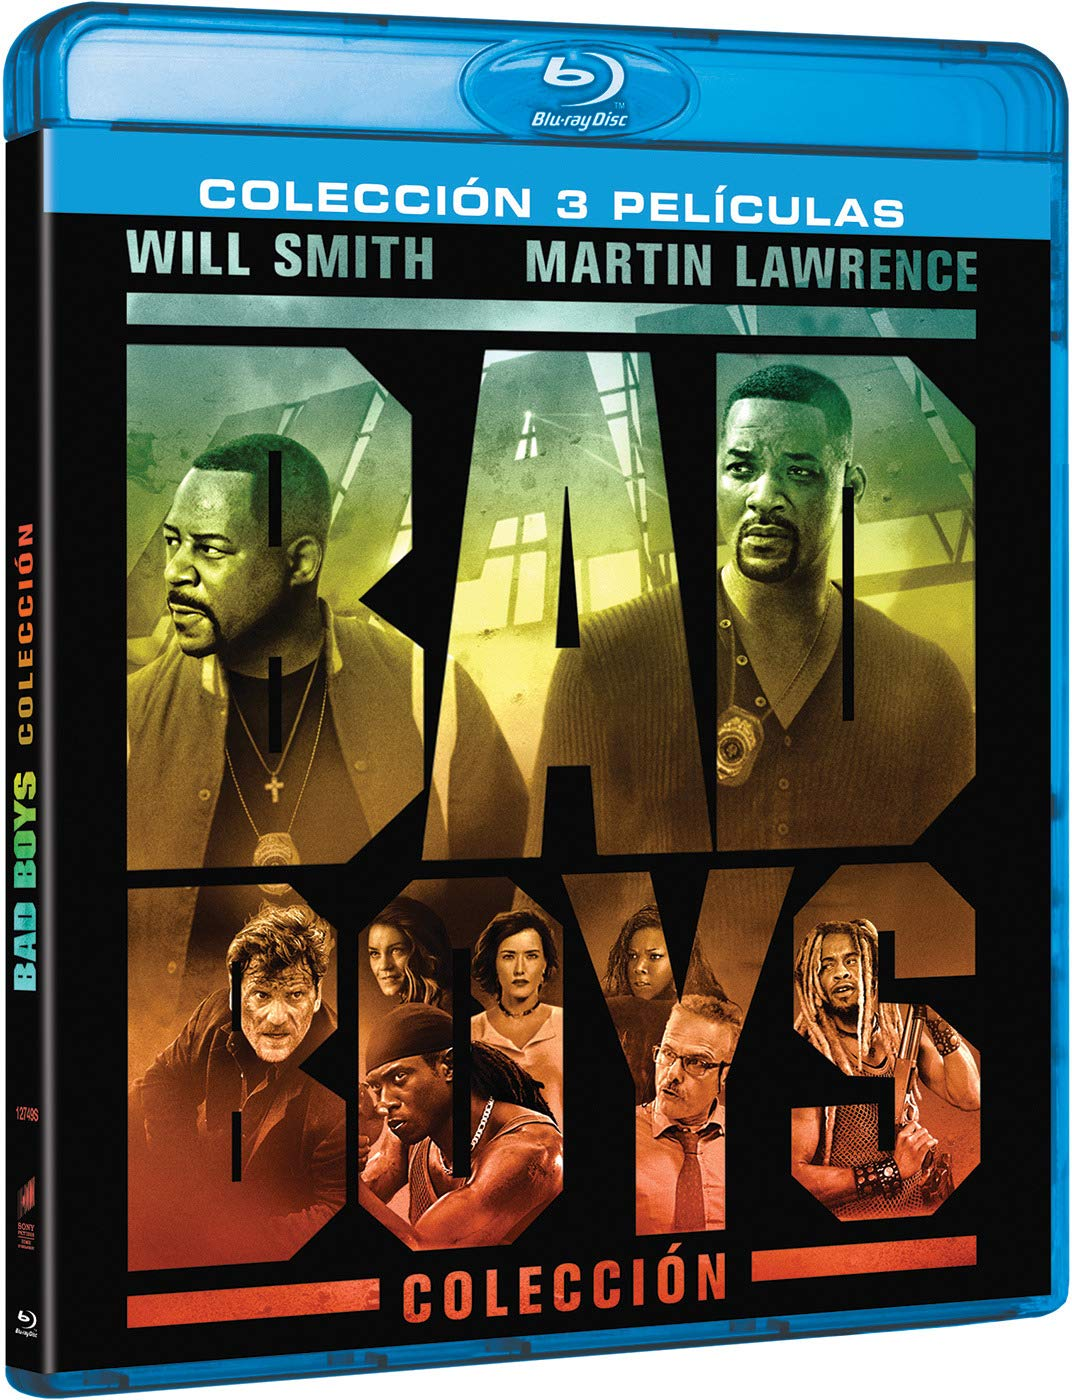 Pack 1-3: Bad Boys (BD) [Blu-ray]: Amazon.es: Will Smith, Martin Lawrence, Vanessa Hudgens, Alexander Ludwig, Nicky Jam, DJ Khaled, Lisa Boyle, Jordi Mollá, Peter Stormare, Gabrielle Union, Adil El Arbi, Bilall Fallah,